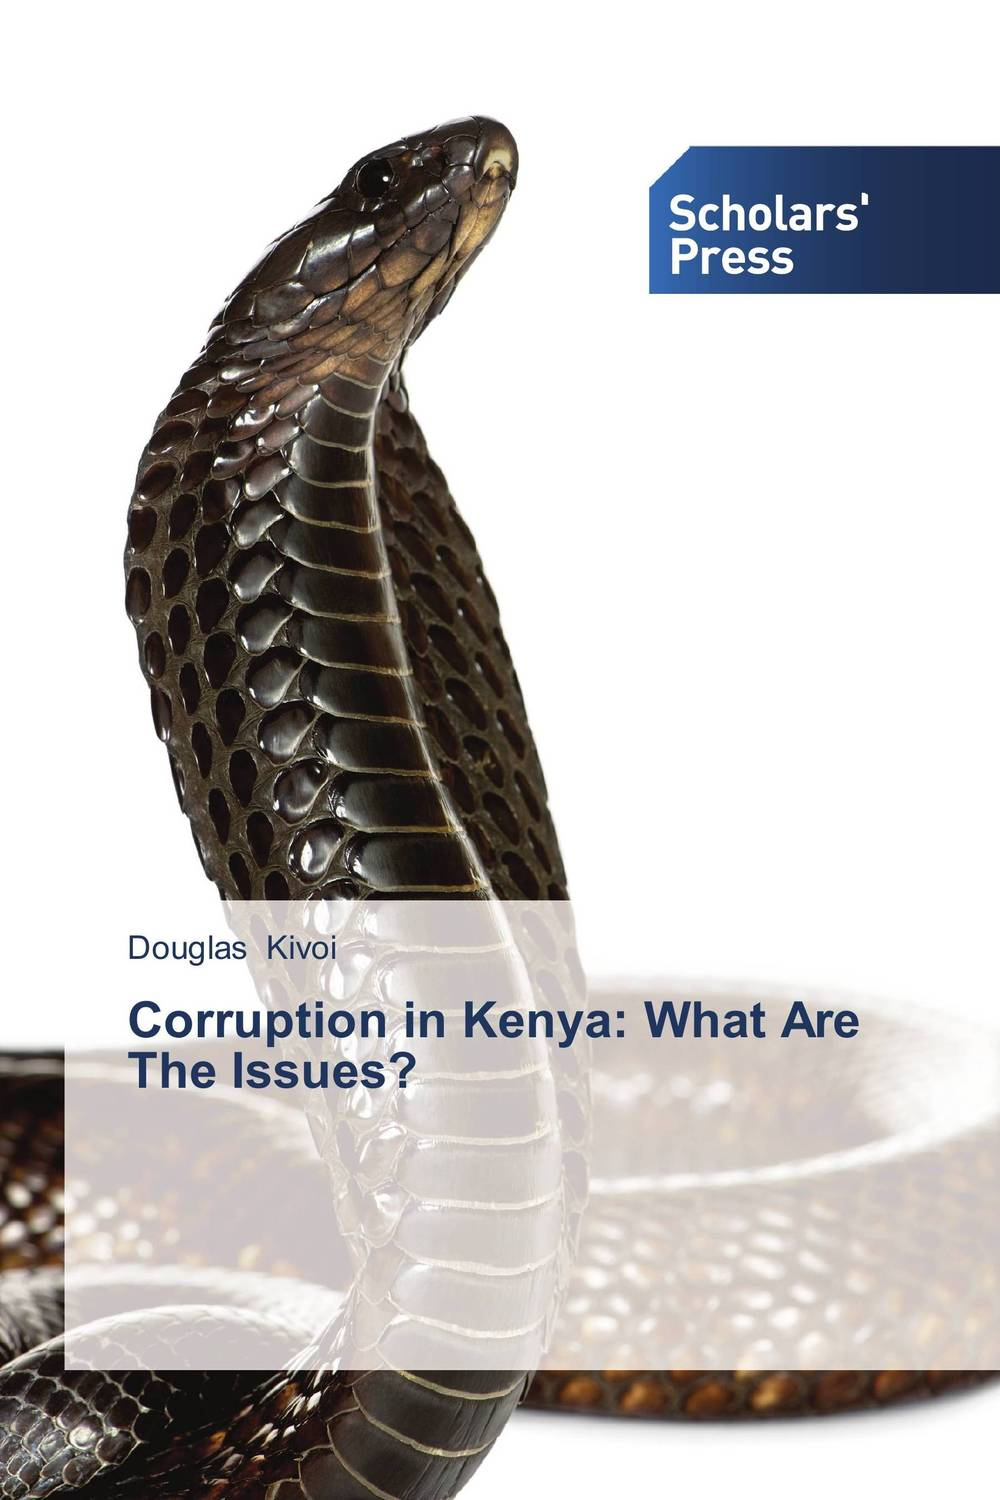 Corruption in Kenya: What Are The Issues? how to buy a house with no or little money down